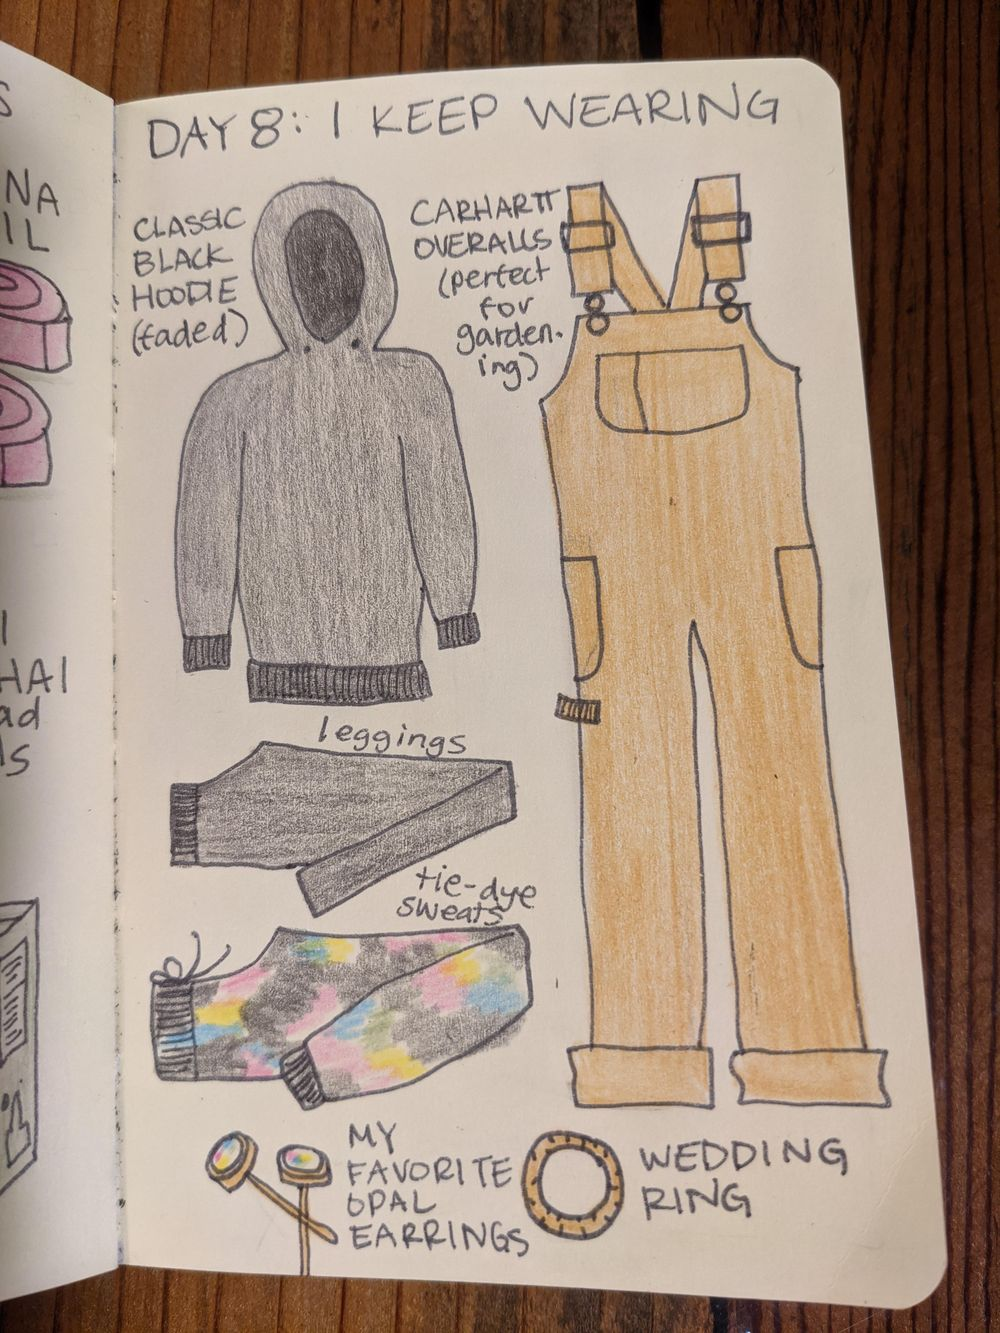 tessa (illustrated journaling 14-day) - image 8 - student project